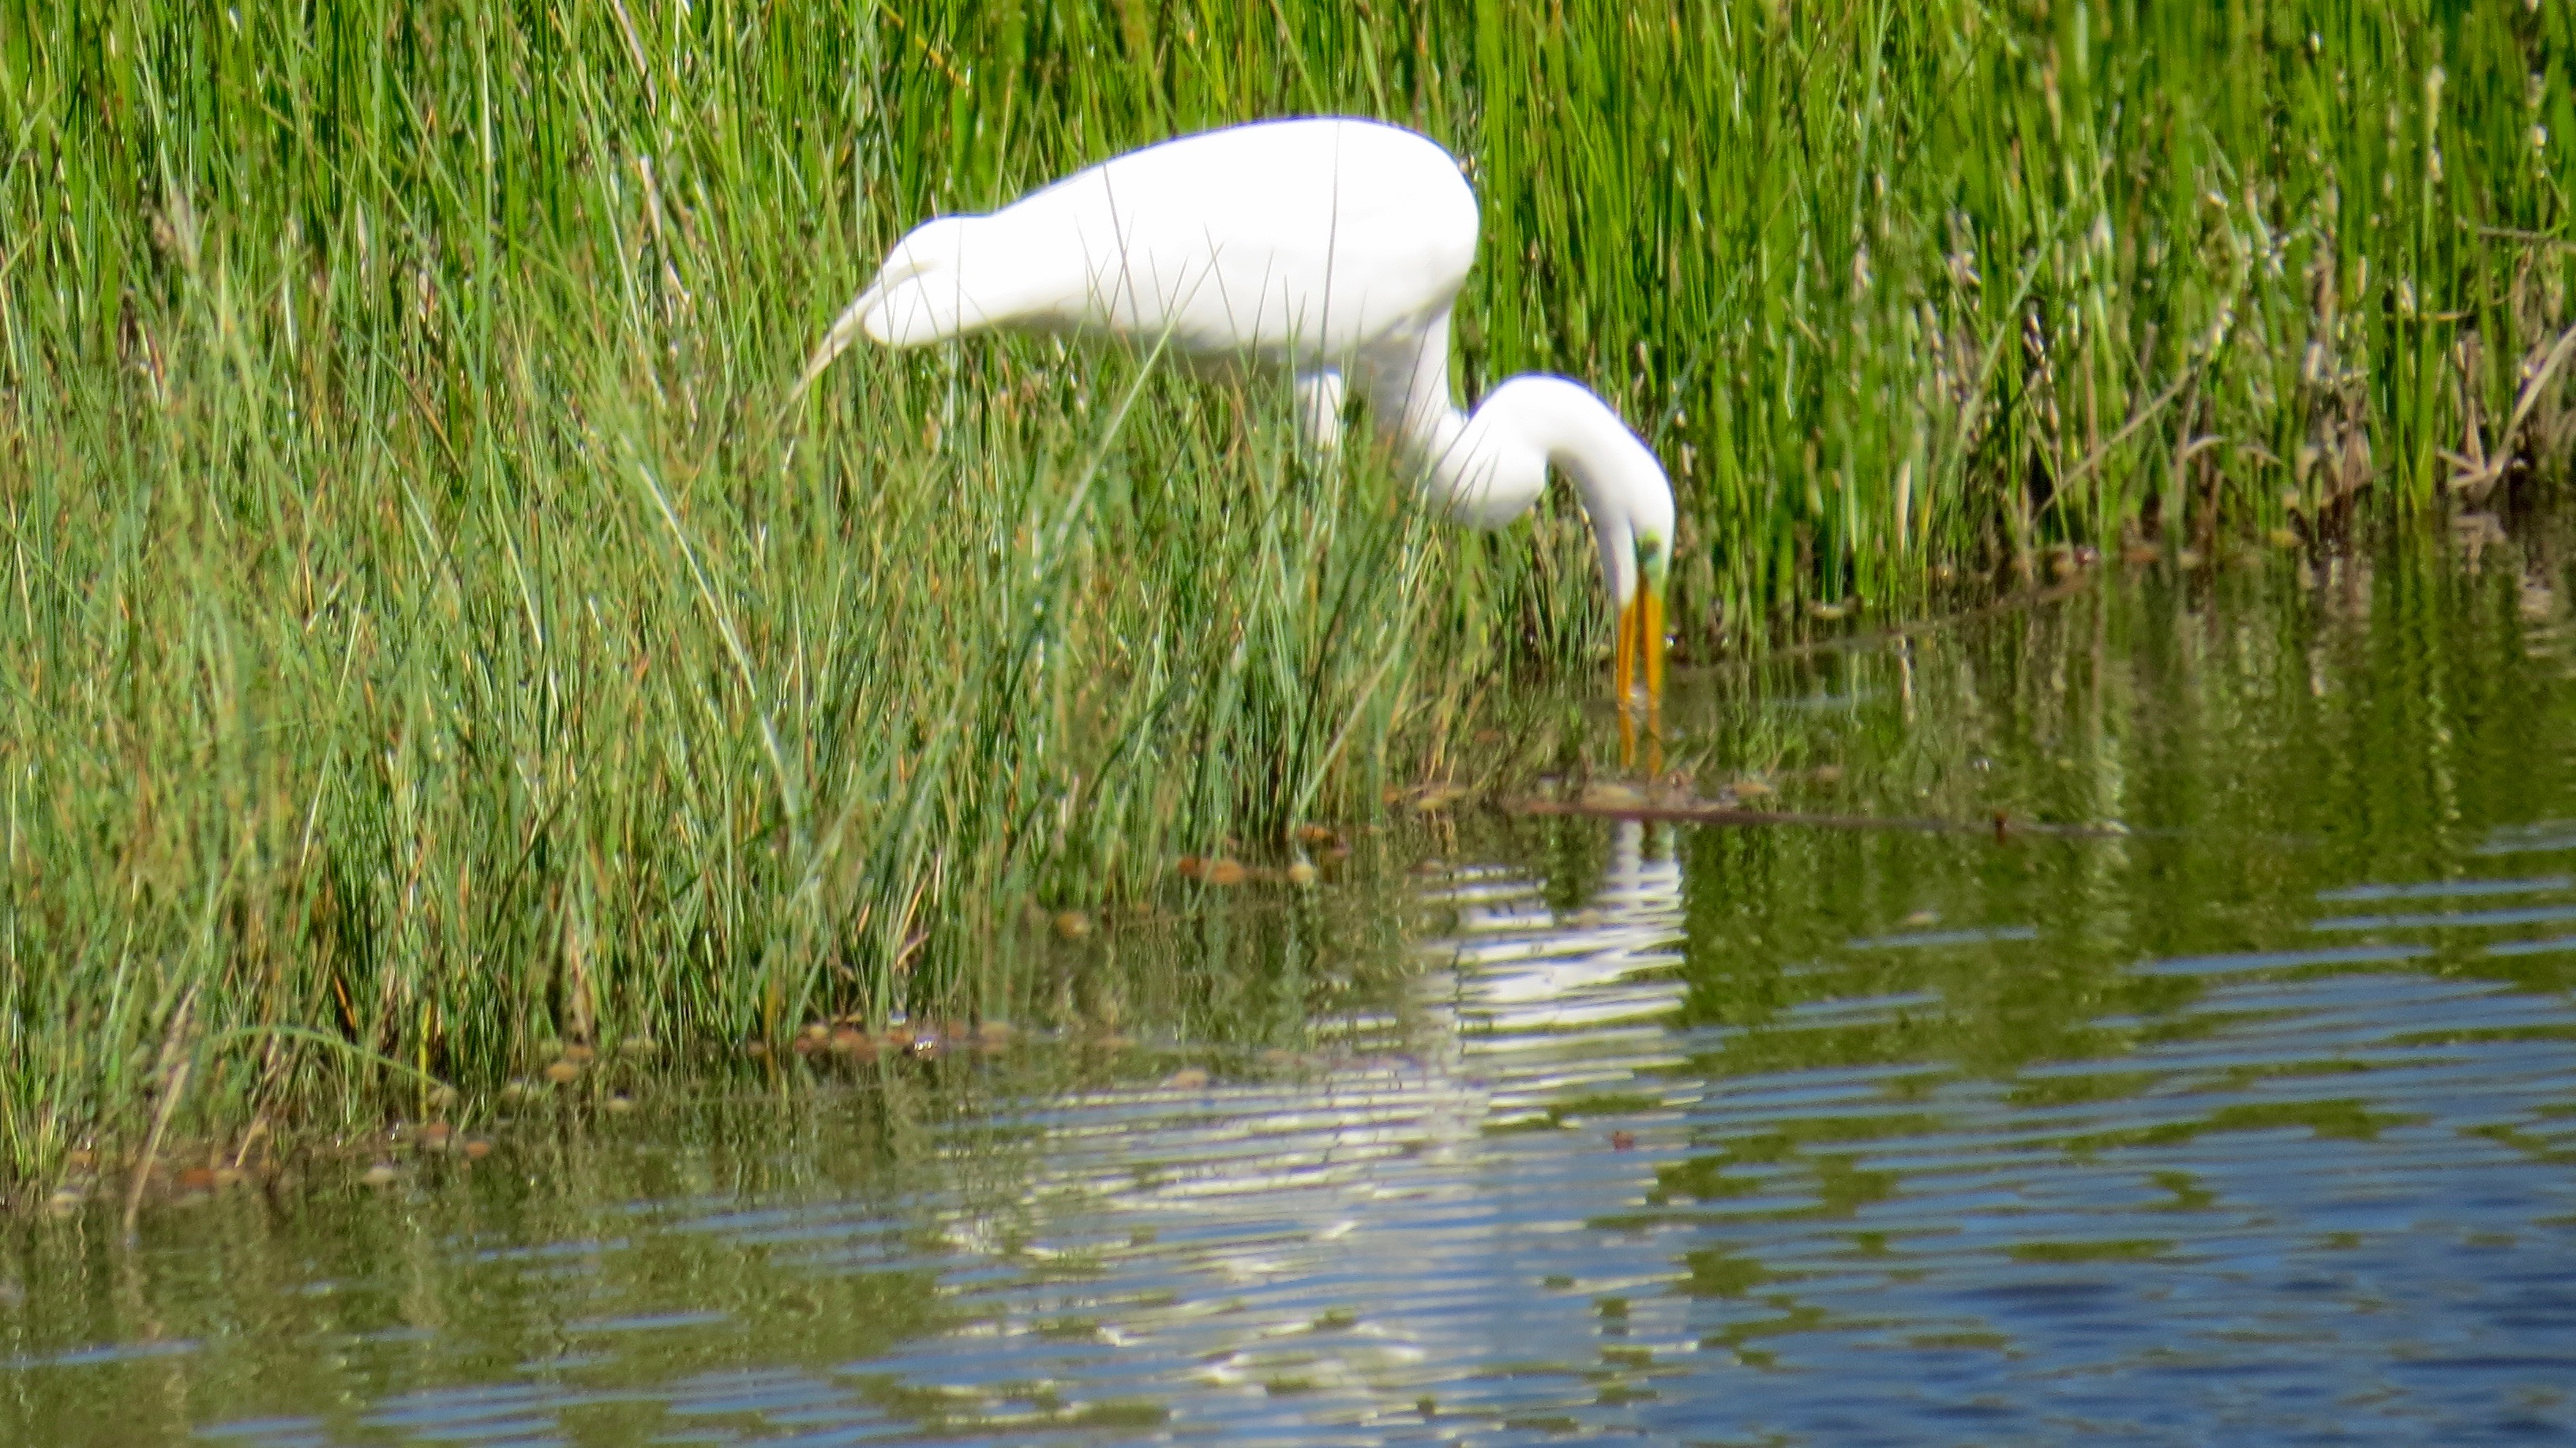 This Great Egret just caught his lunch of choice, some unfortunate aquatic creature.